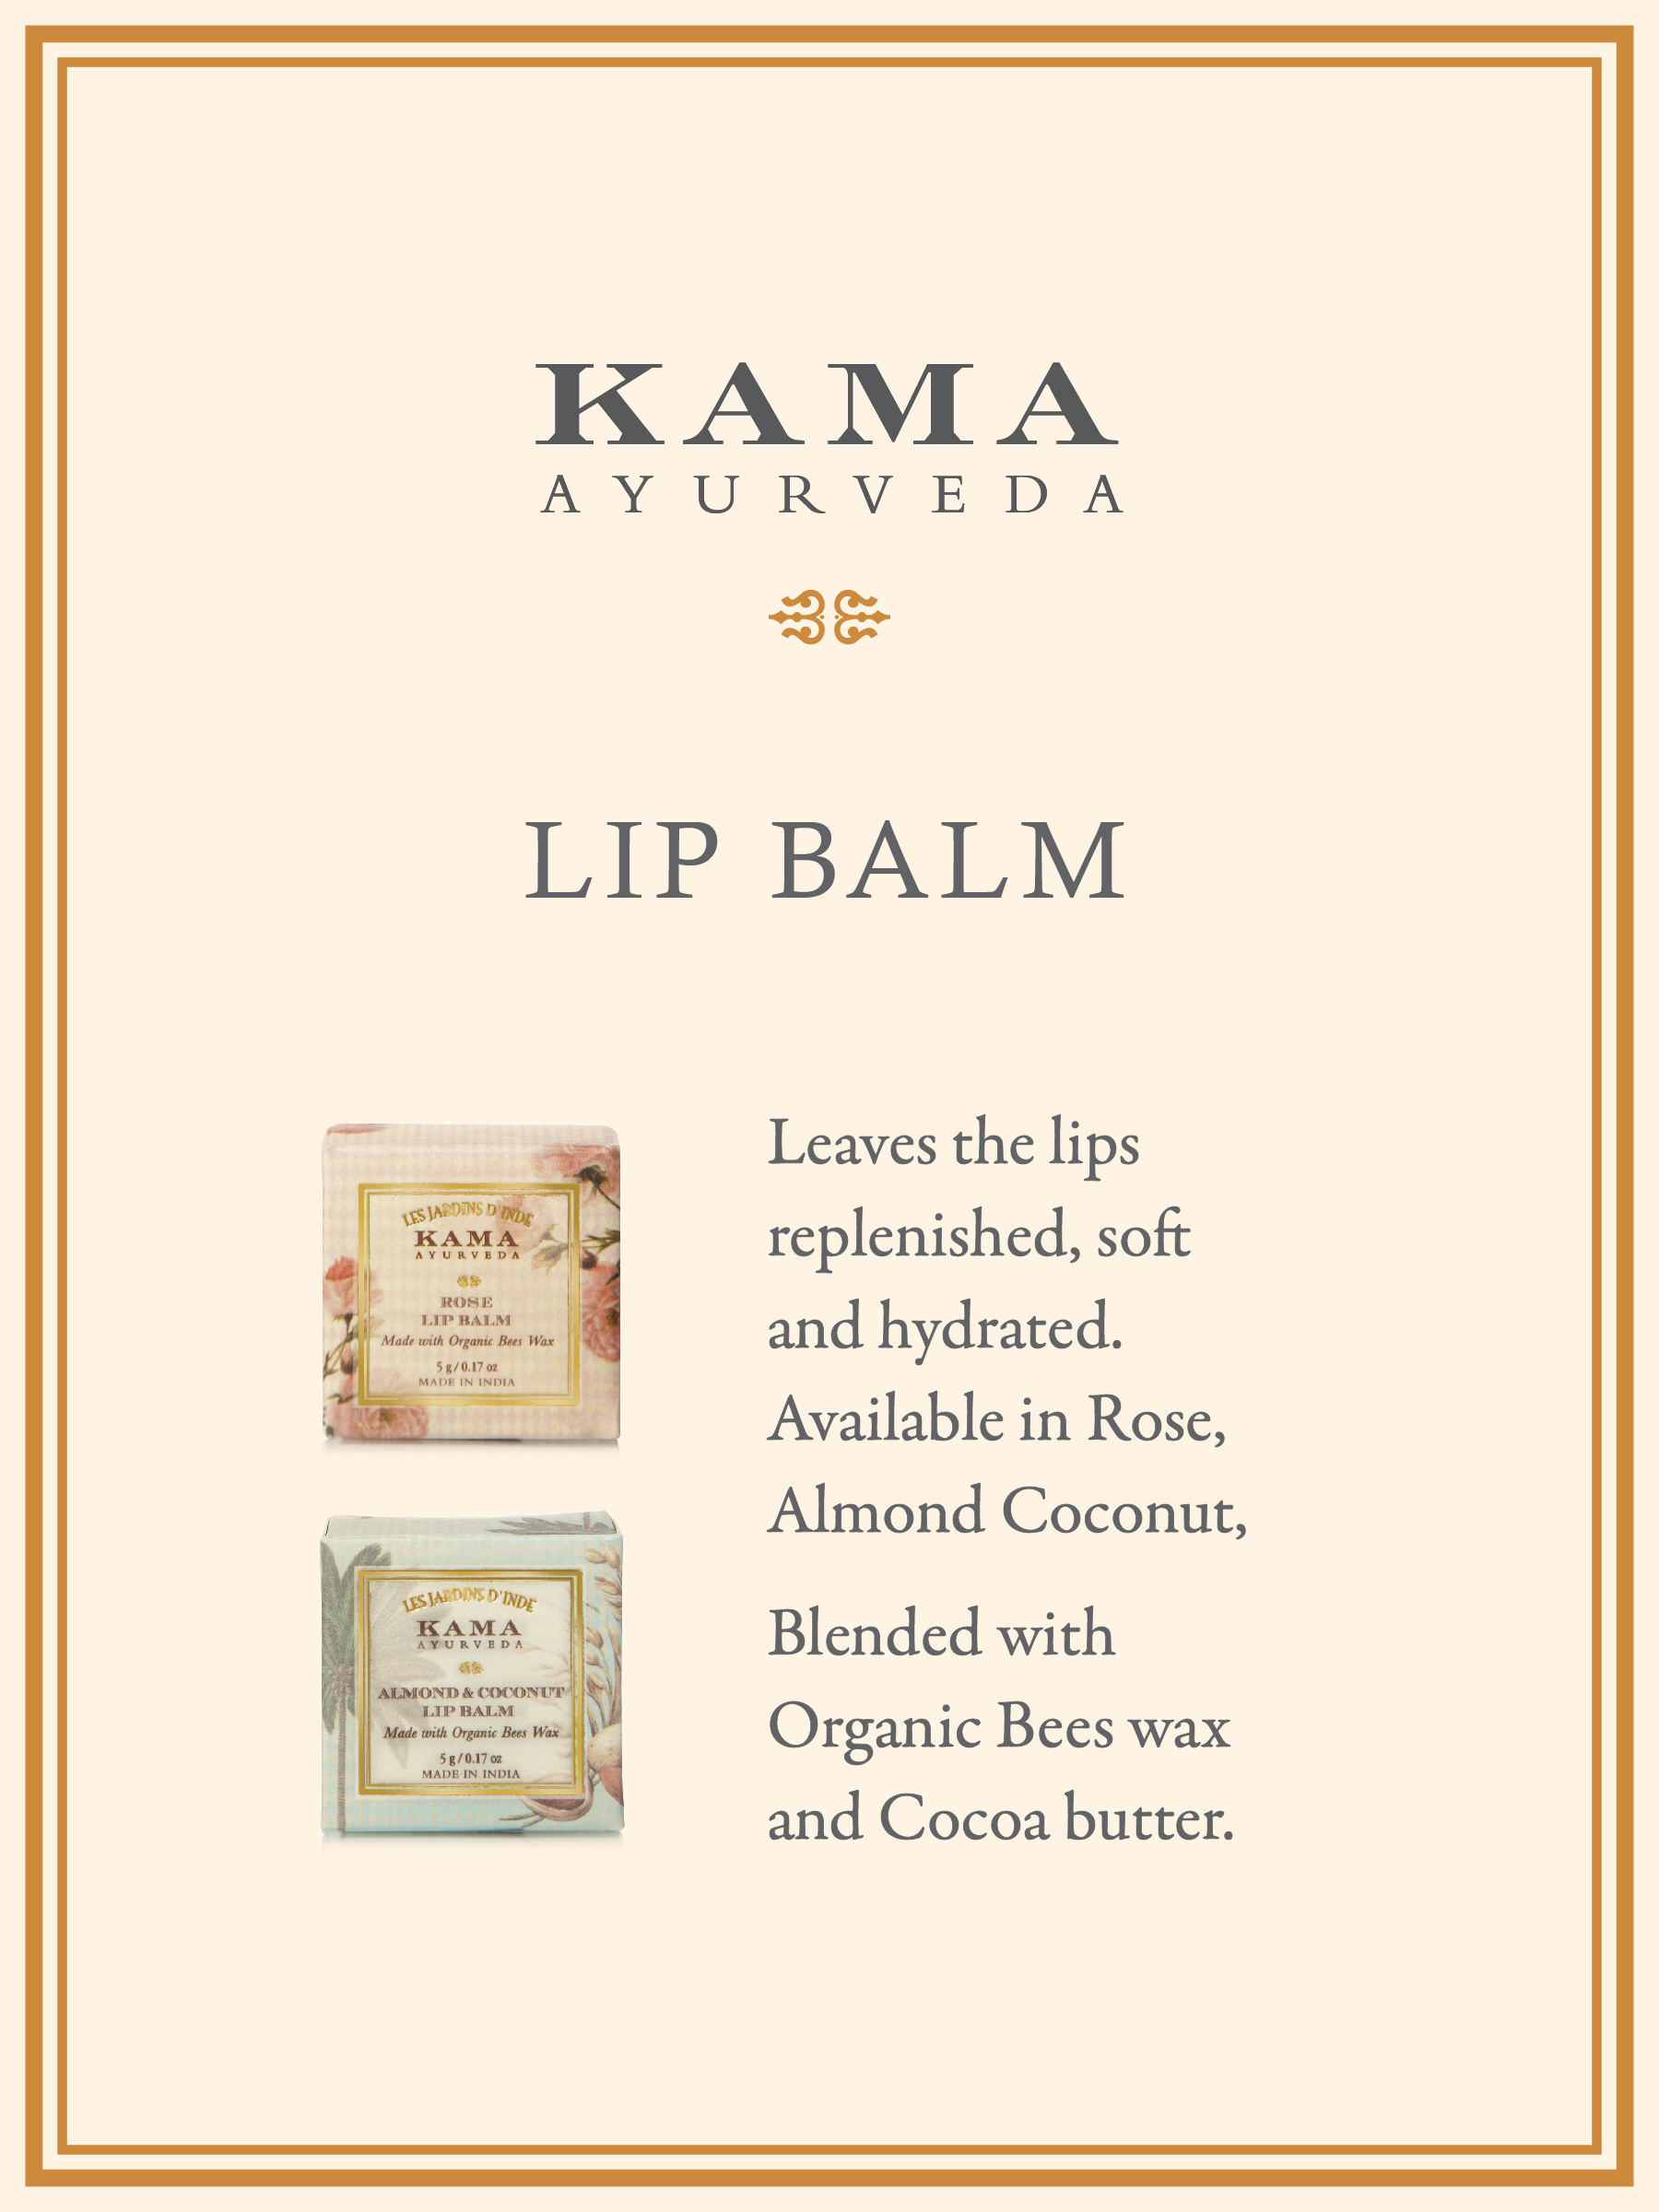 Kama Ayurveda ORGANIC ALMOND AND COCONUT LIP BALM